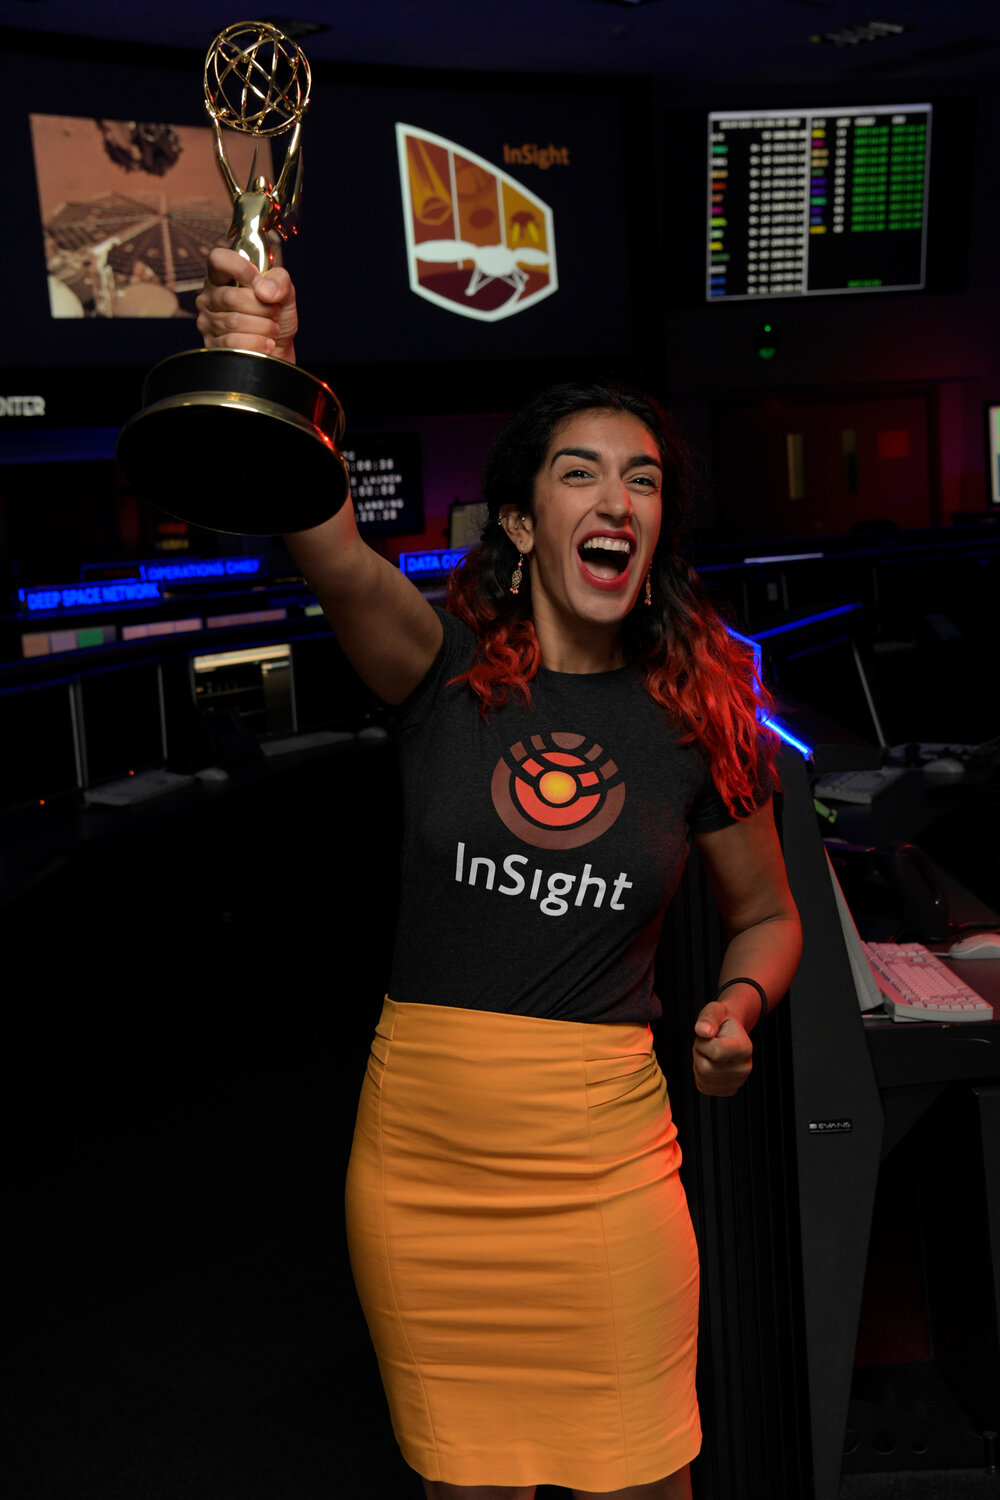 Farah Ali Bey ... a young woman entering history today after driving a NASA spacecraft on Mars